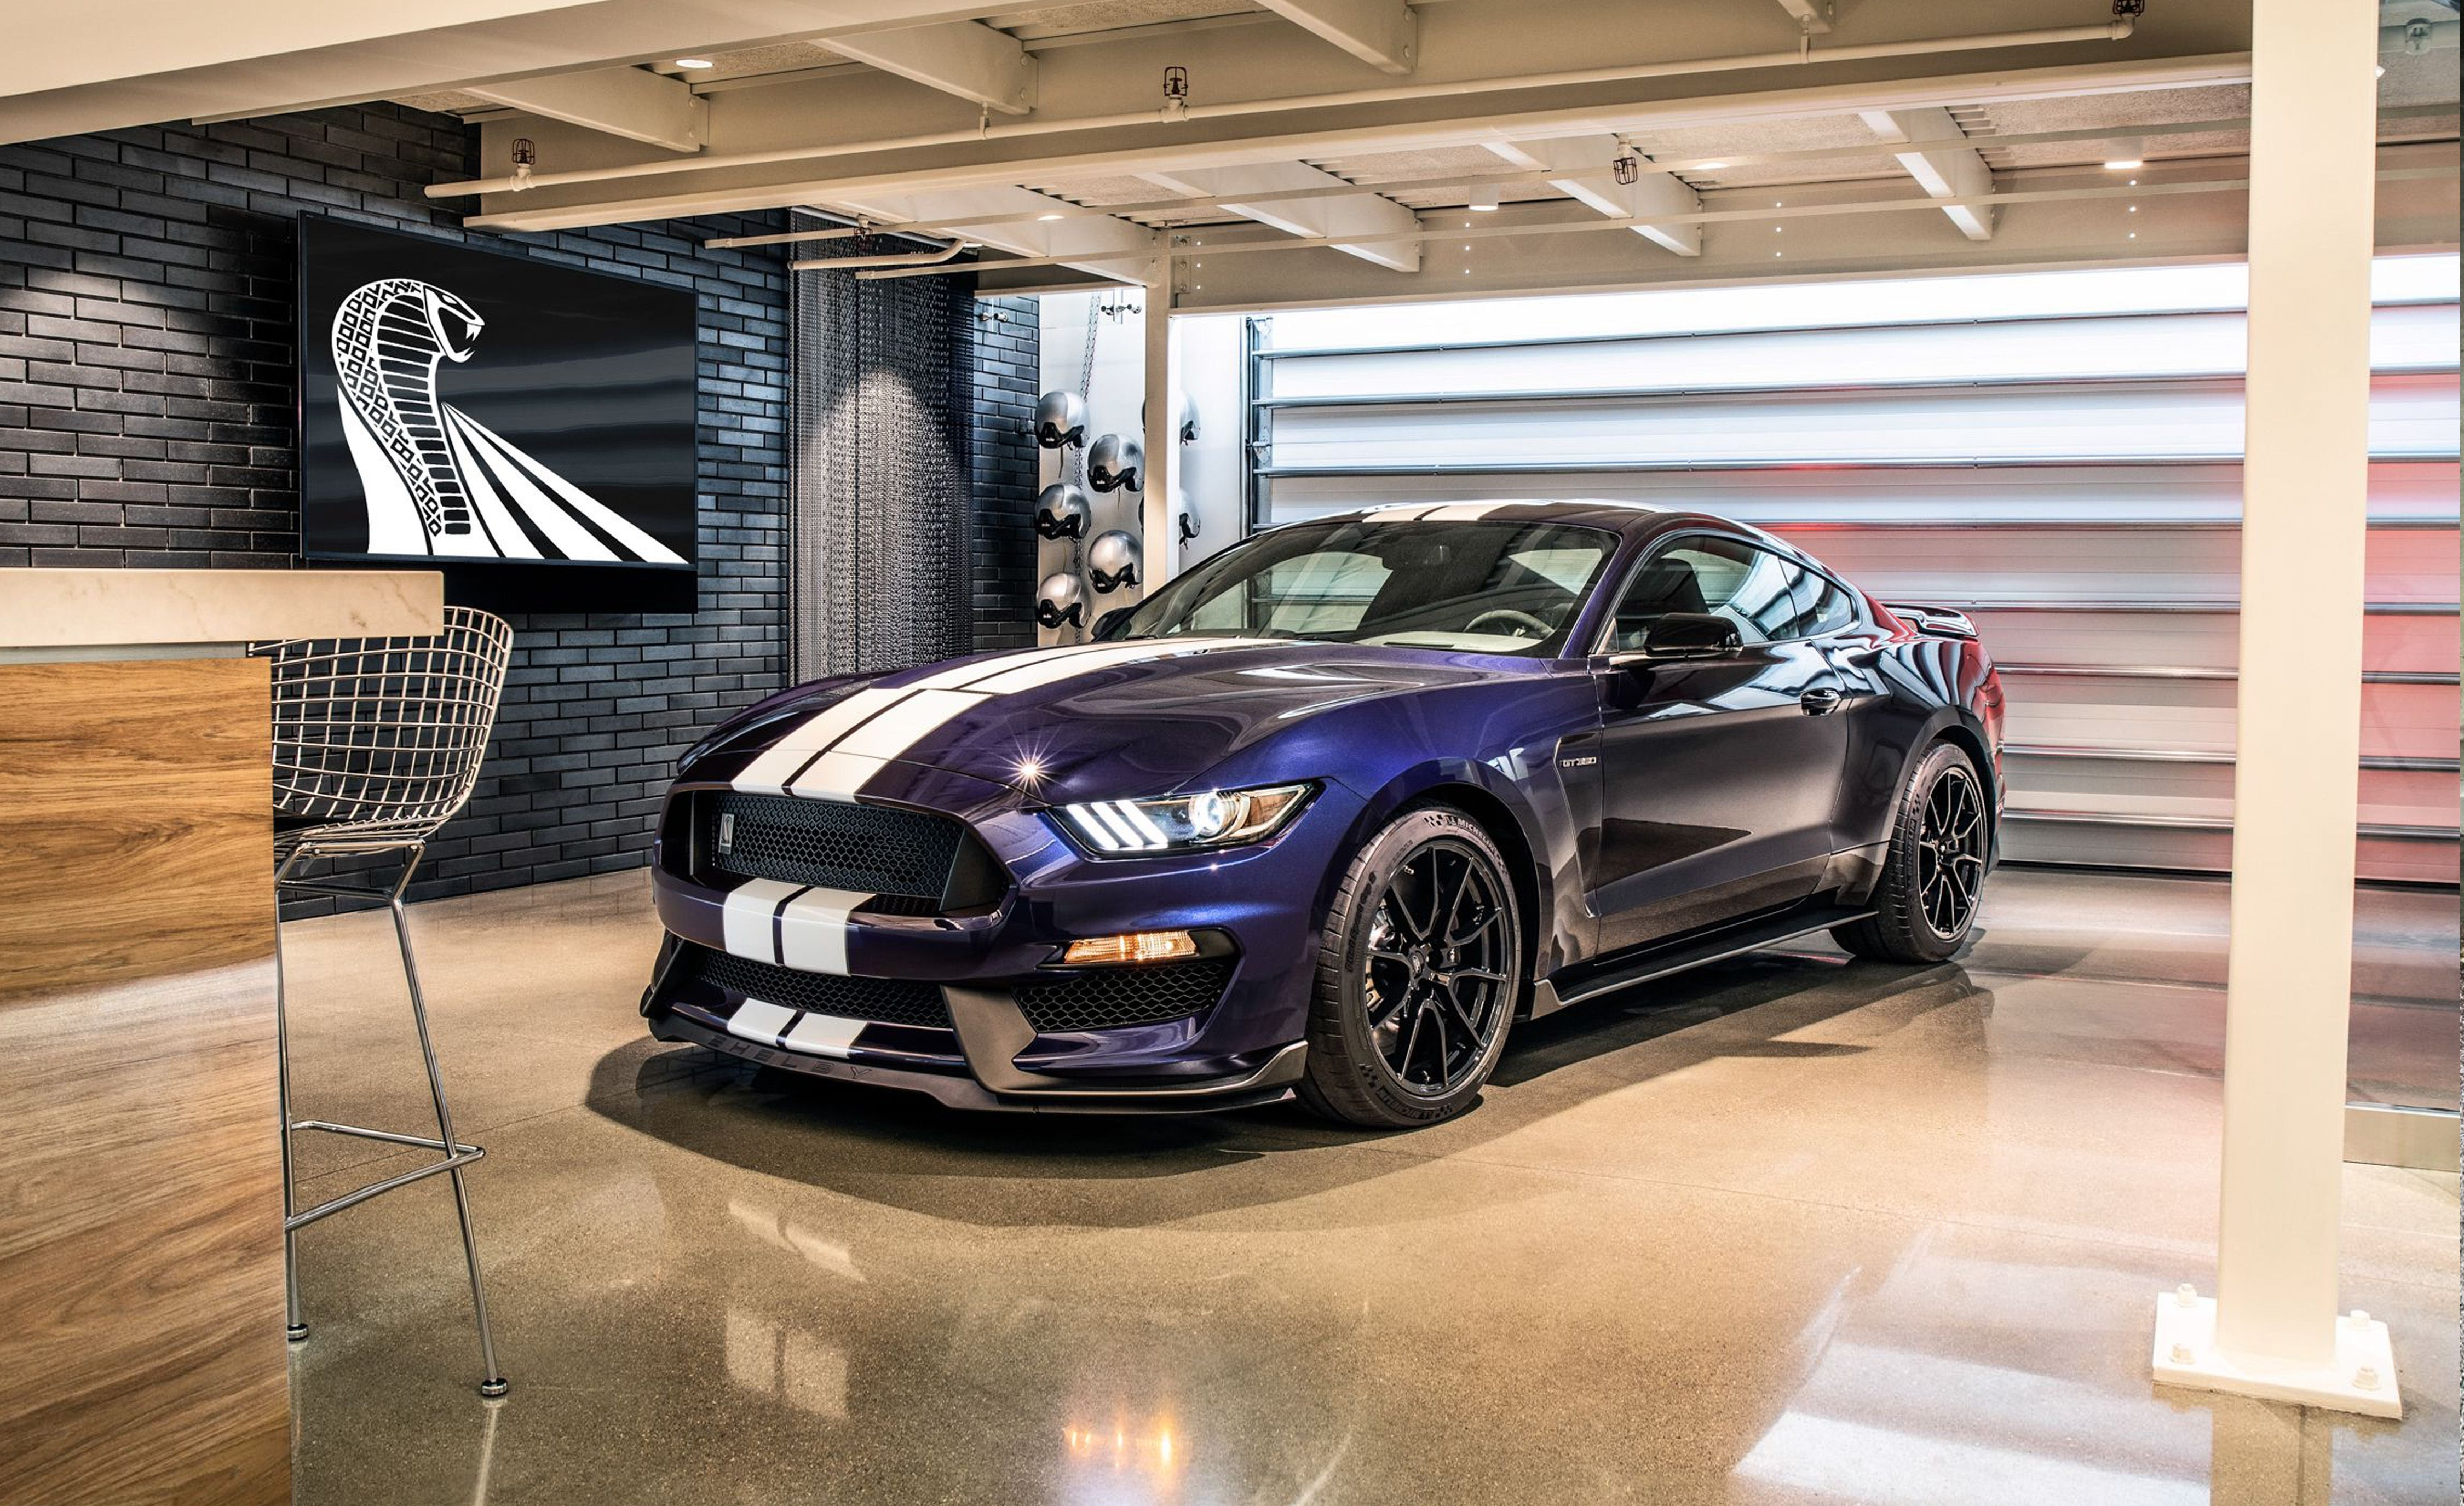 2019 Ford Mustang Shelby GT350 / GT350R Reviews | Ford Mustang Shelby GT350 / GT350R Price ...